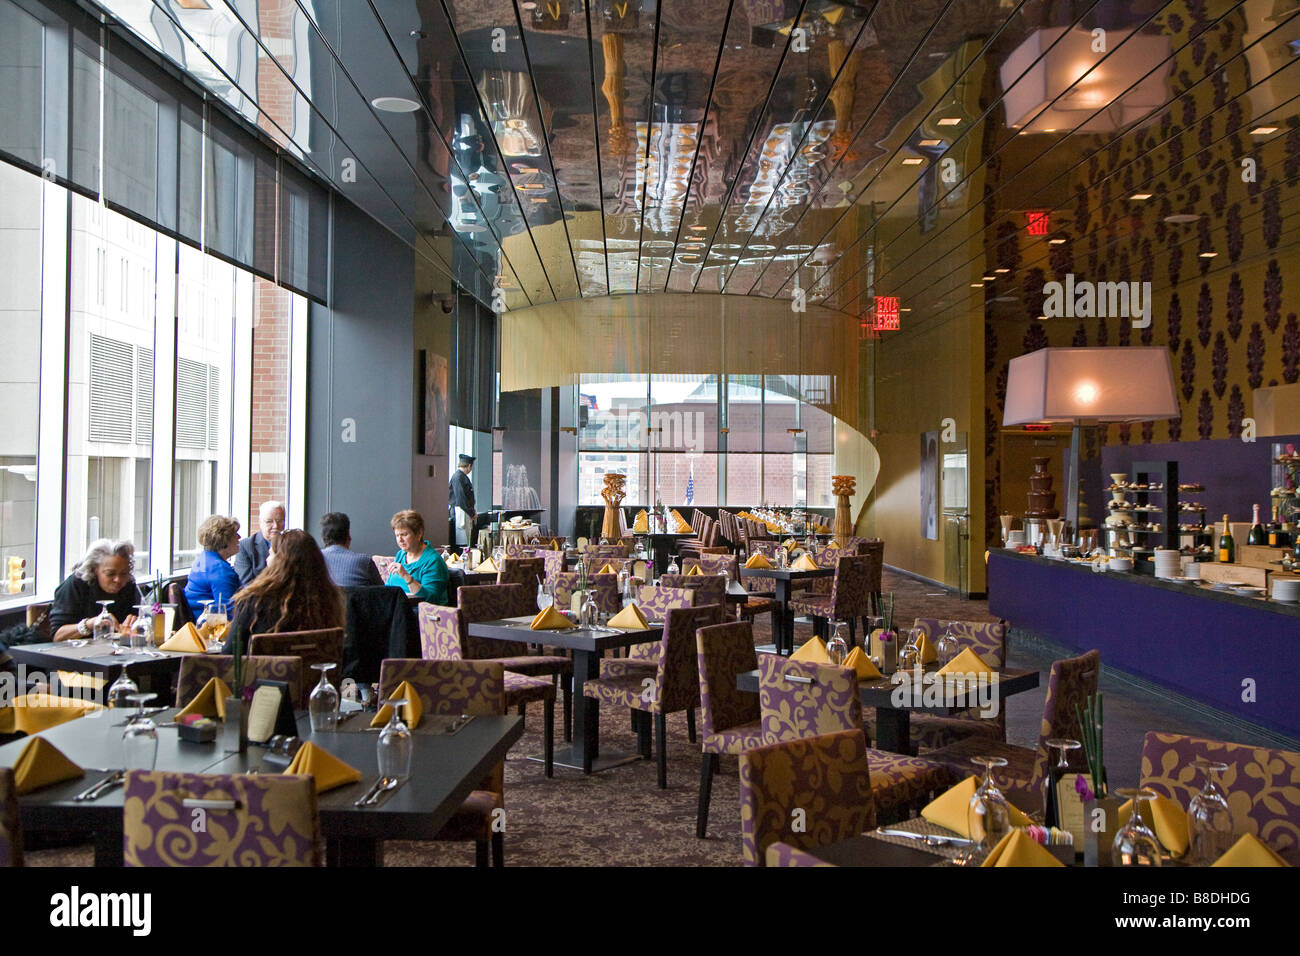 Detroit Michigan The Bistro 555 Restaurant In The Hotel At The Stock